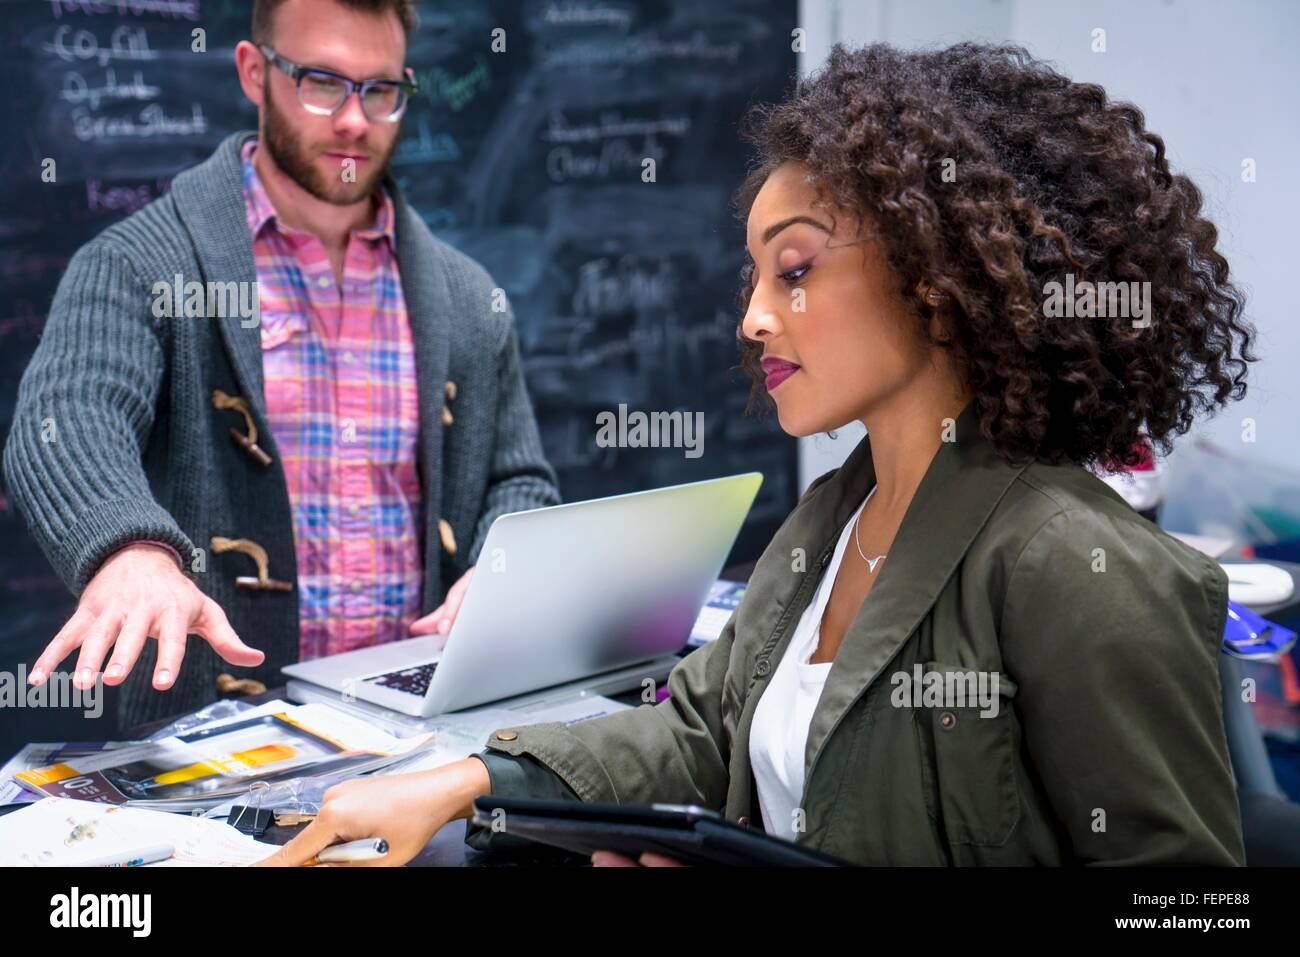 Colleagues in workplace using digital tablet and laptop - Stock Image